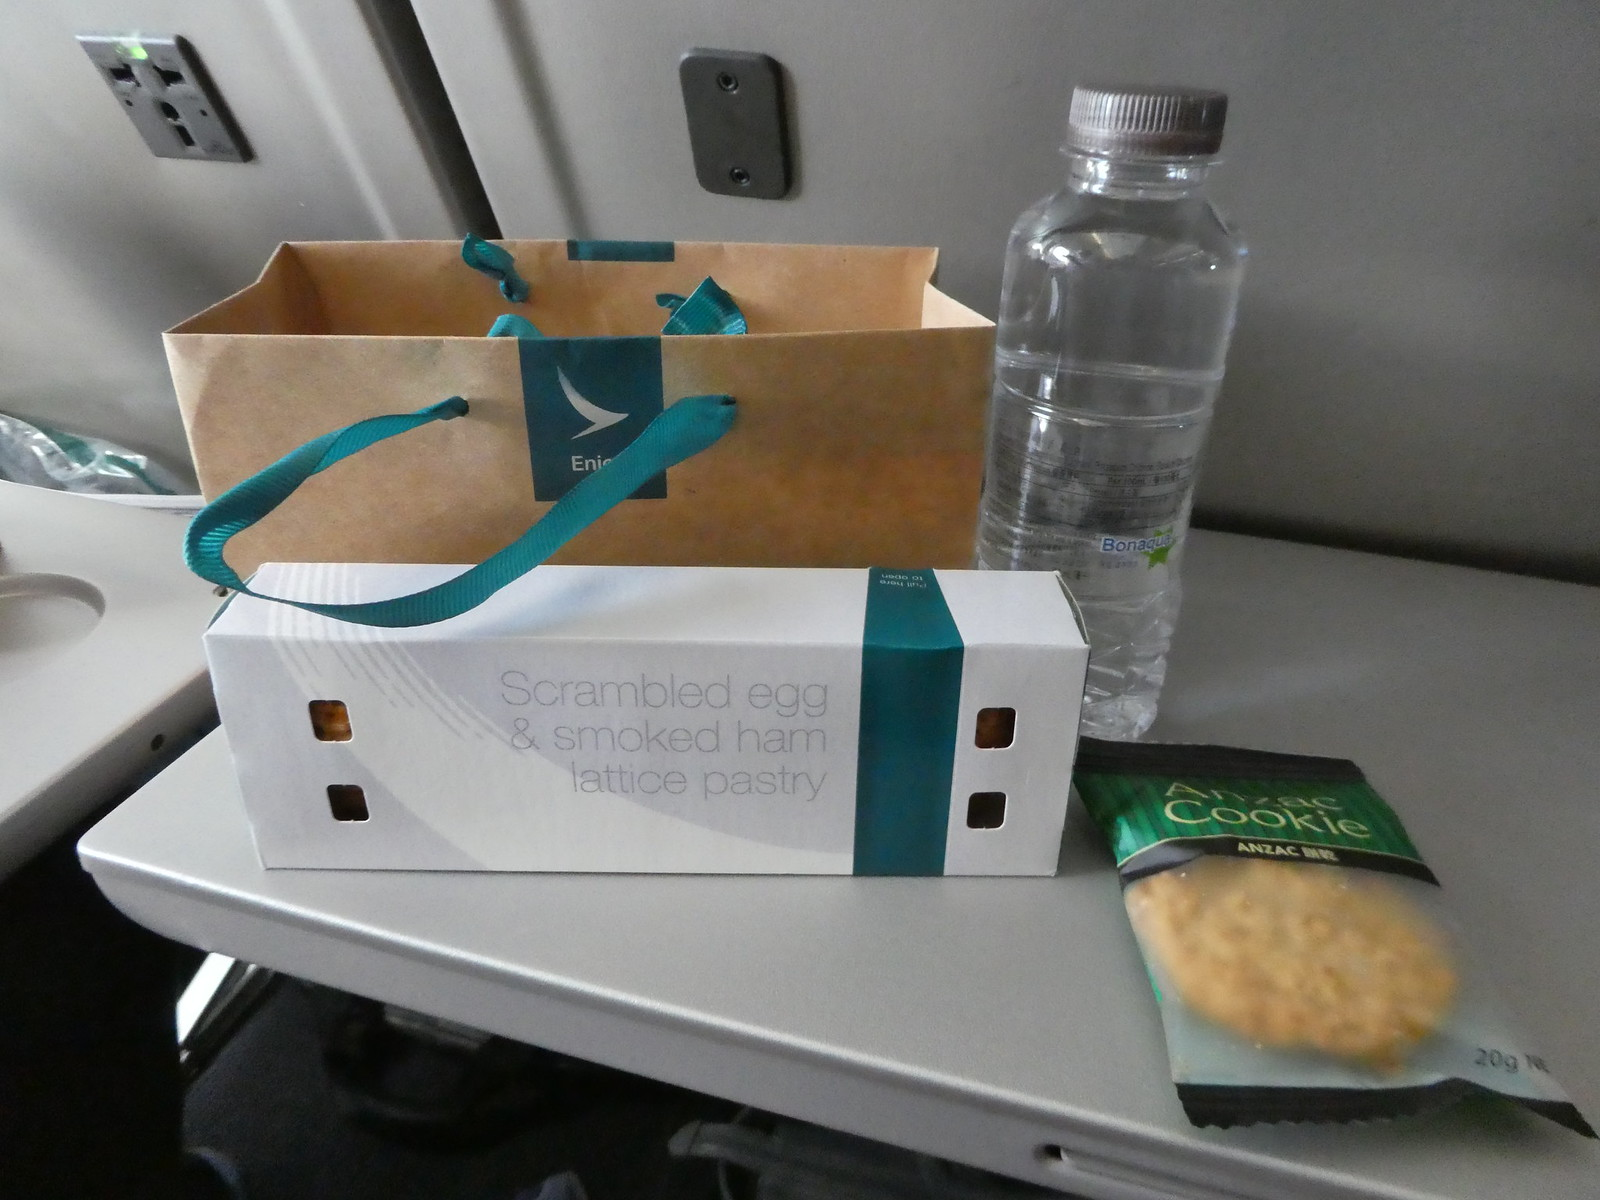 Our snack meal on board our Cathay Pacific flight from Hong Kong to Manila